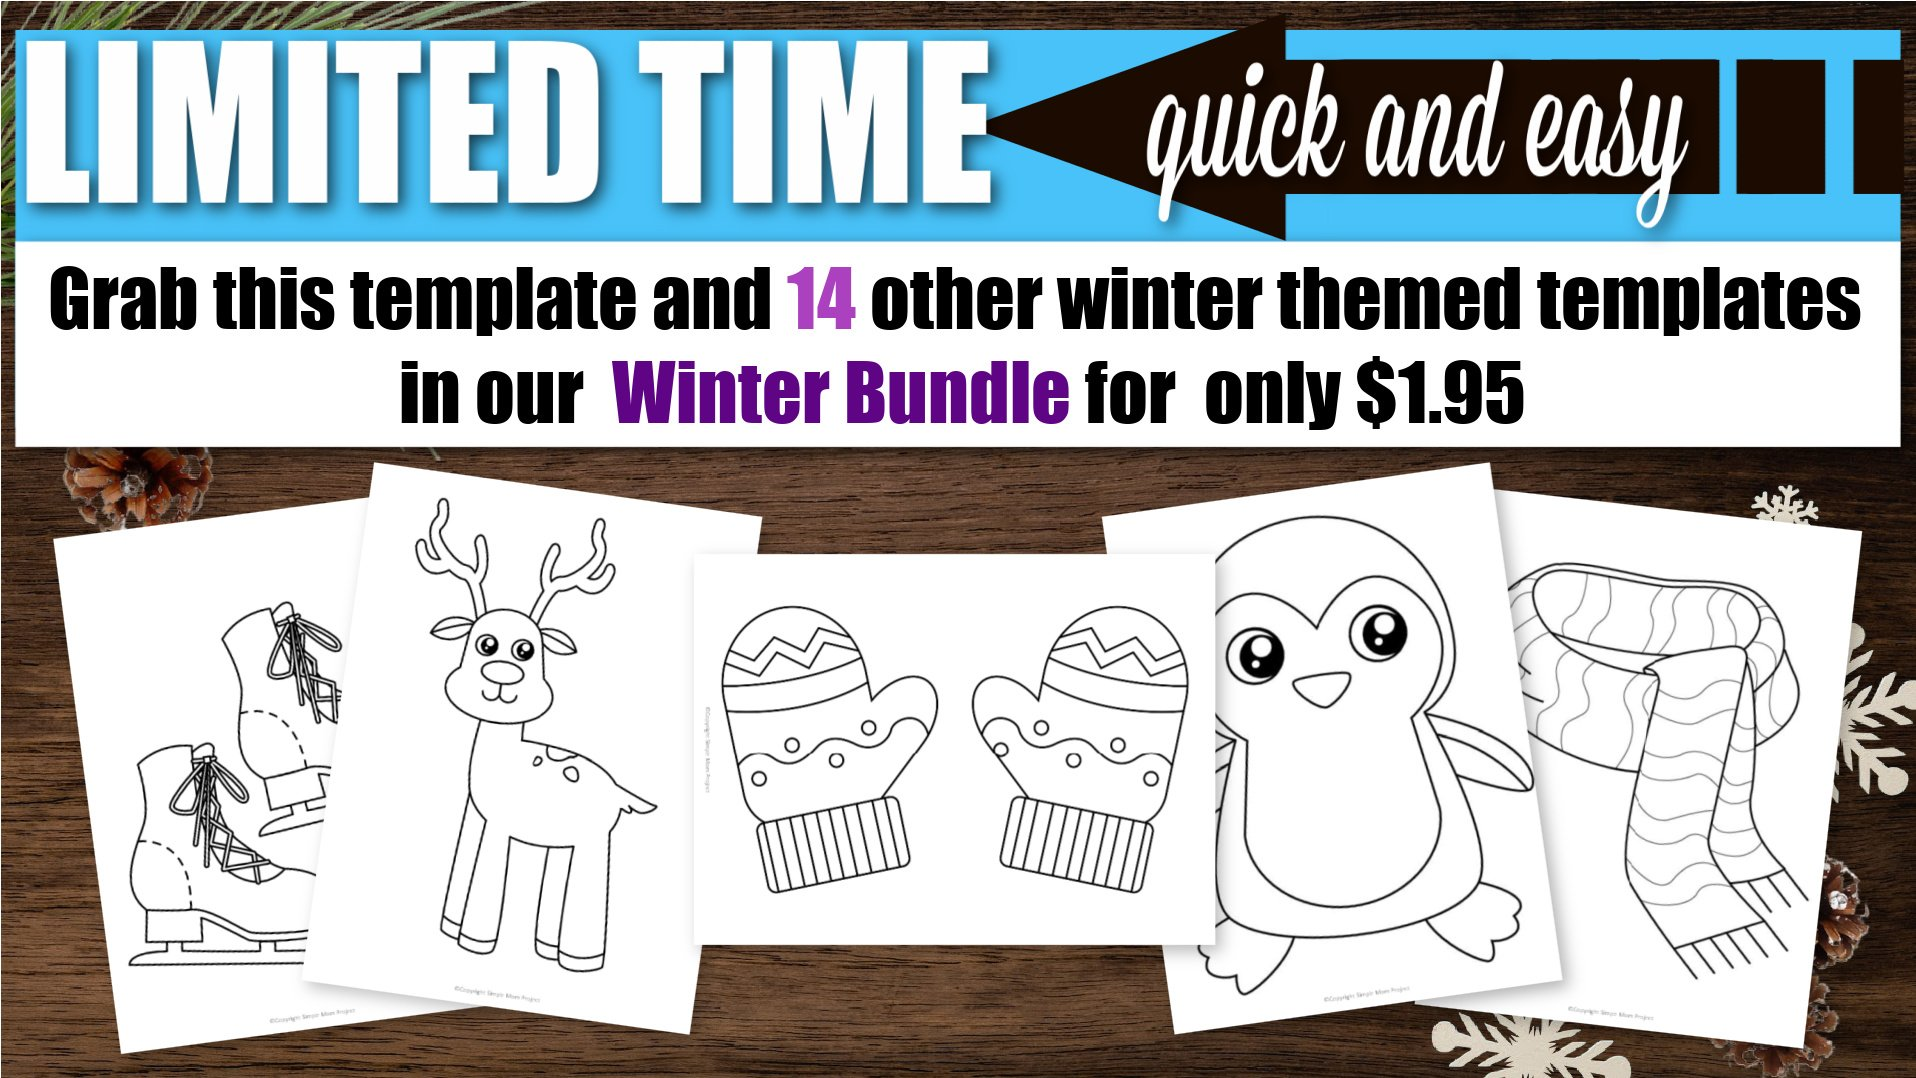 Printable Winter Templates for winter themed crafts for preschoolers toddlers and kindergartners